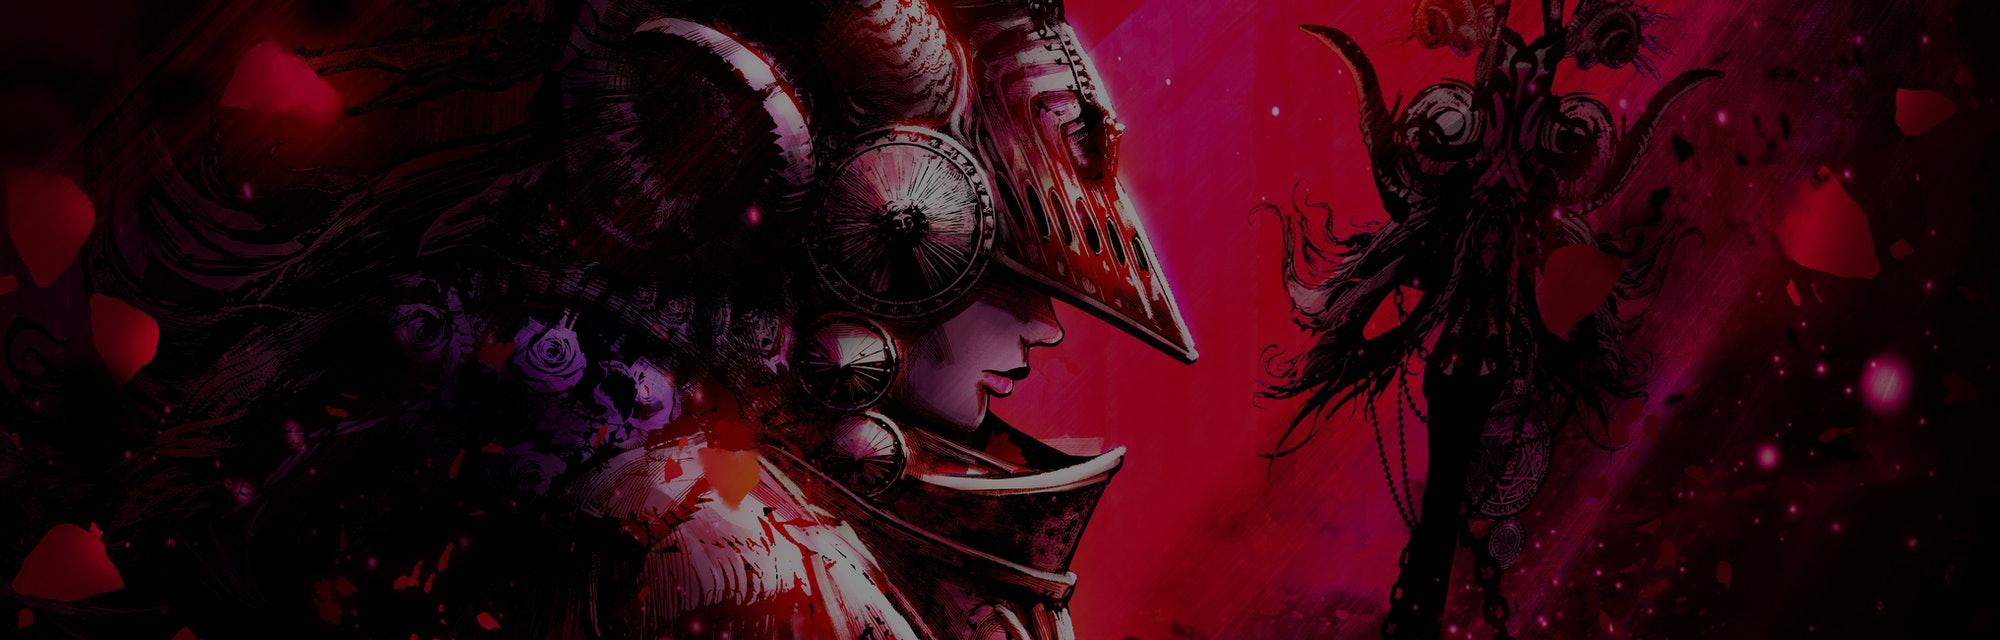 A shaman woman illuminated by a red beam of light, wearing an unusual iron helmet with horns , her face dramatically hidden in the shadows, in her hand a post with a lot of small things 2D